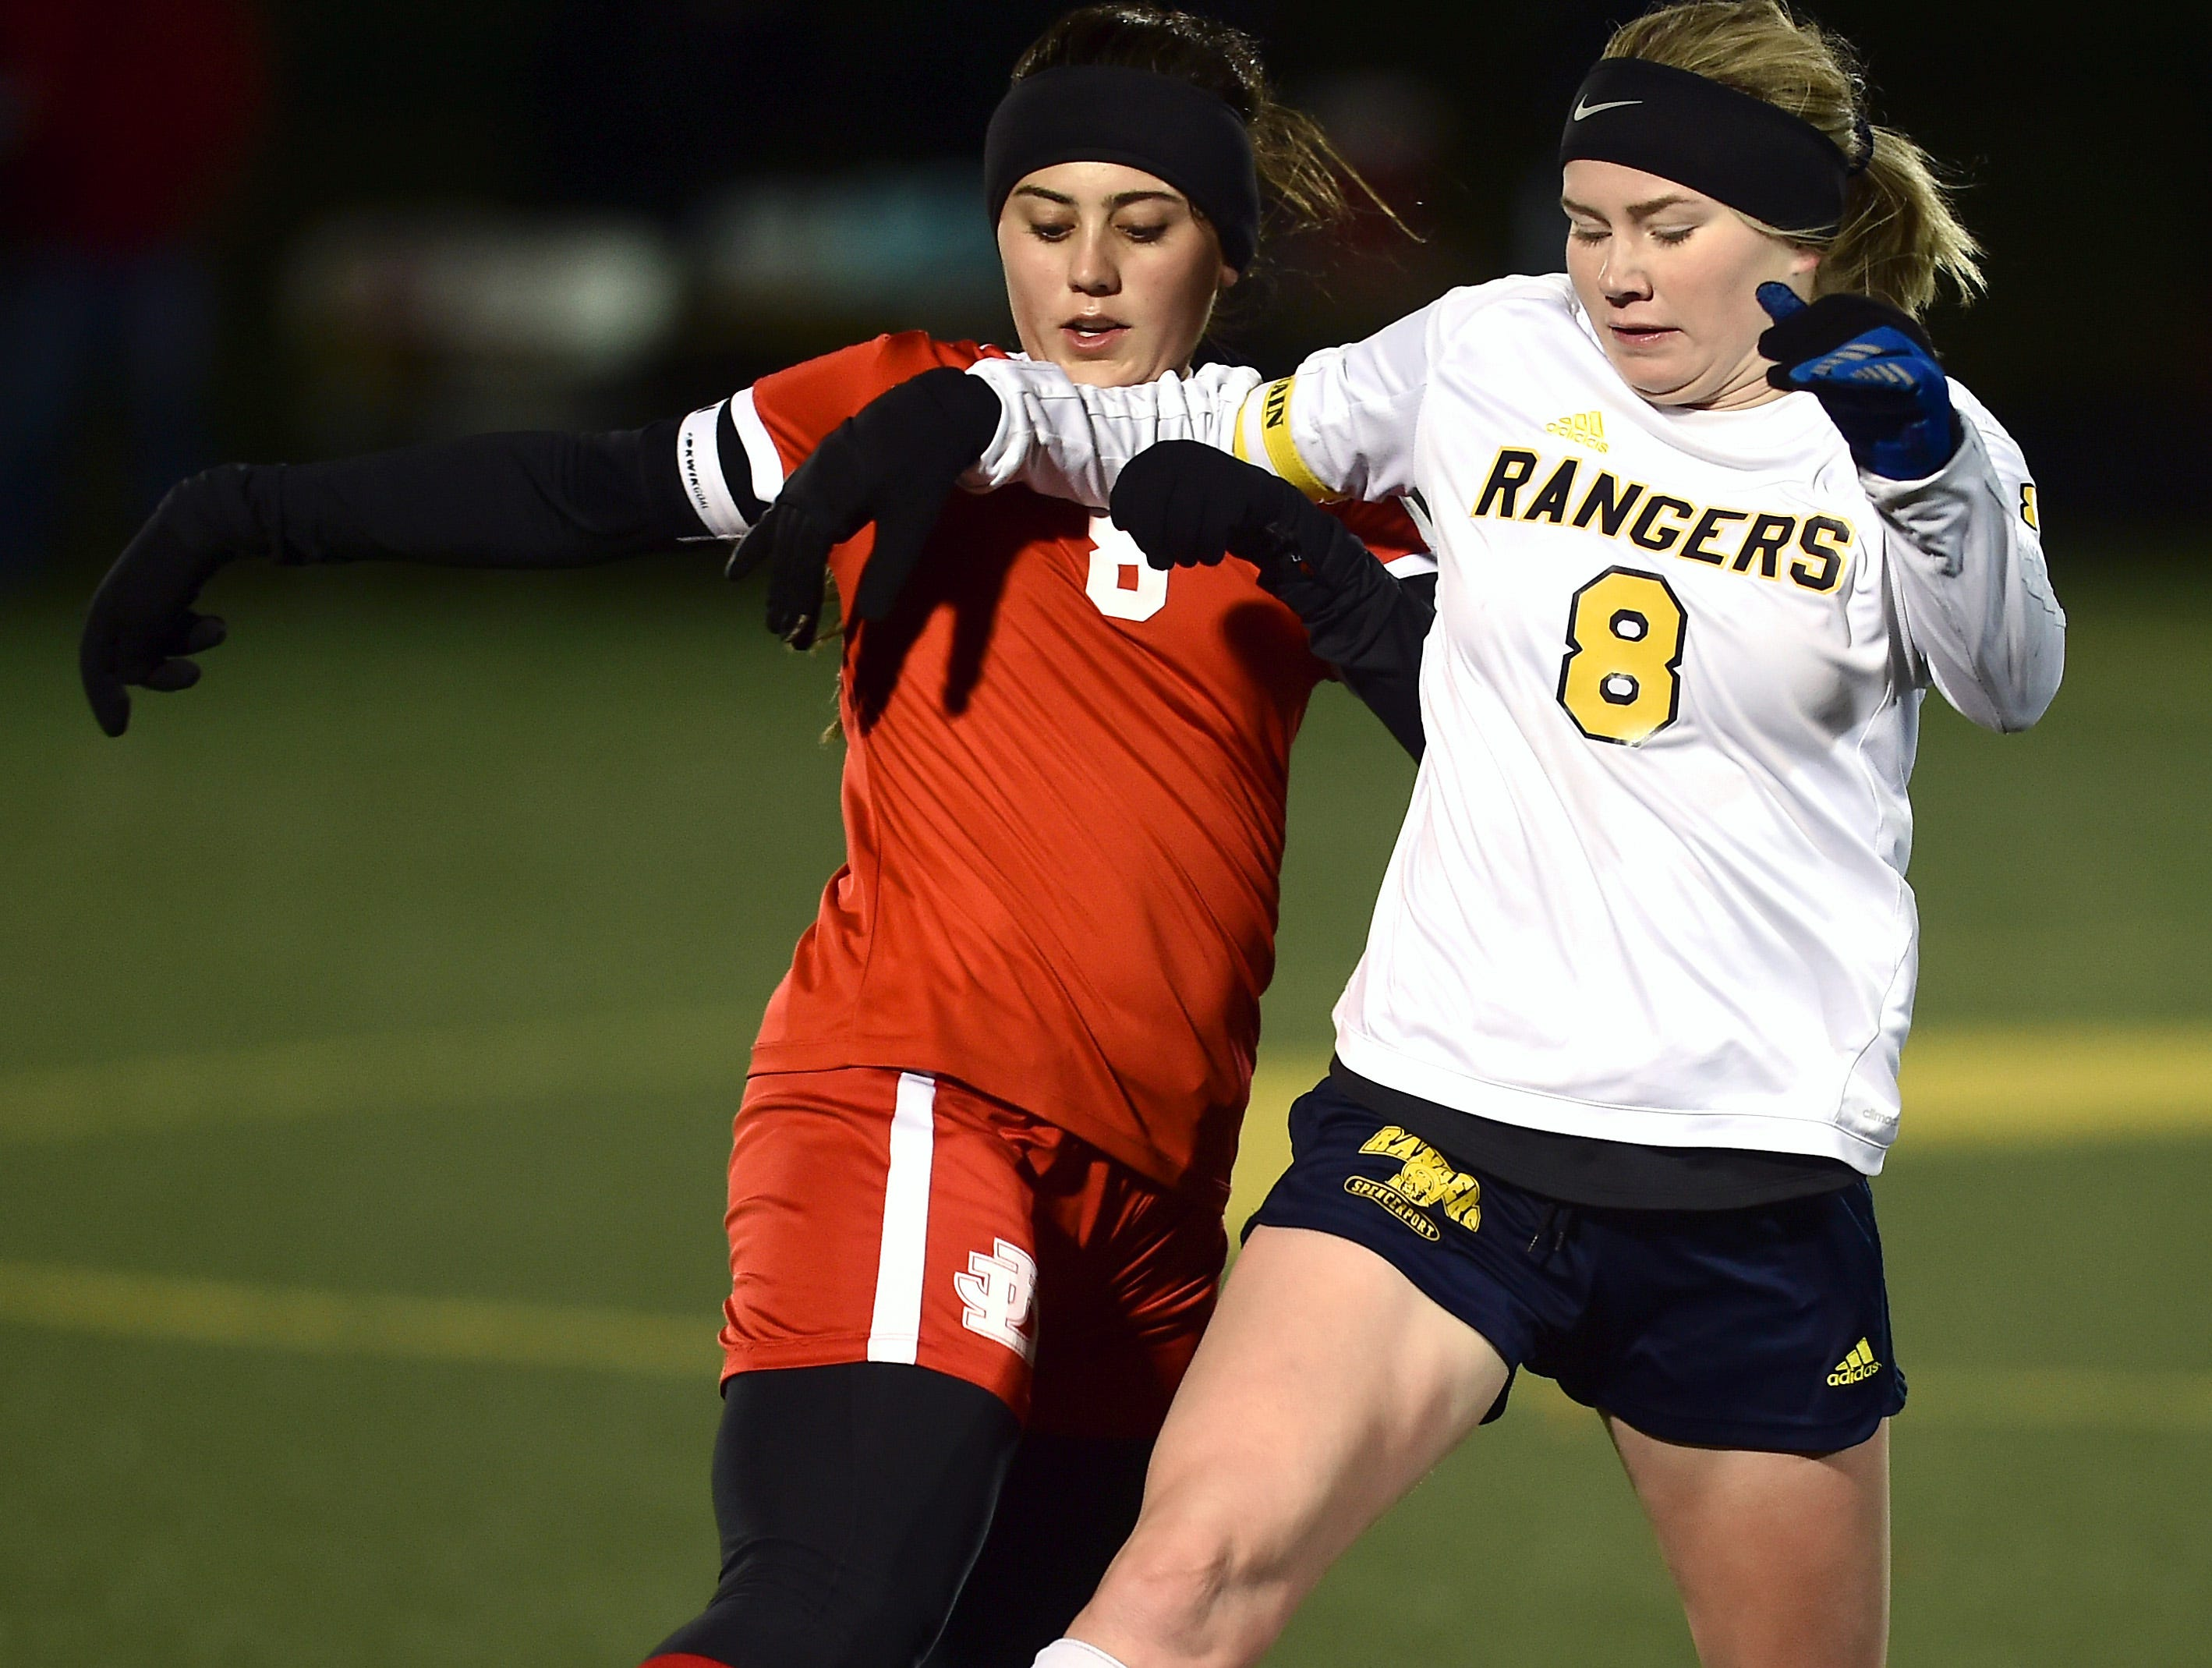 Jamesville-DeWitt's Sydney Tanner (8) and Spencerport's Leah Wengender (8) battle to control ball during first half of action in the Class A NYSPHSAA Girls Soccer Championship semifinal at Tompkins Cortland Community College on Nov. 10, 2018.